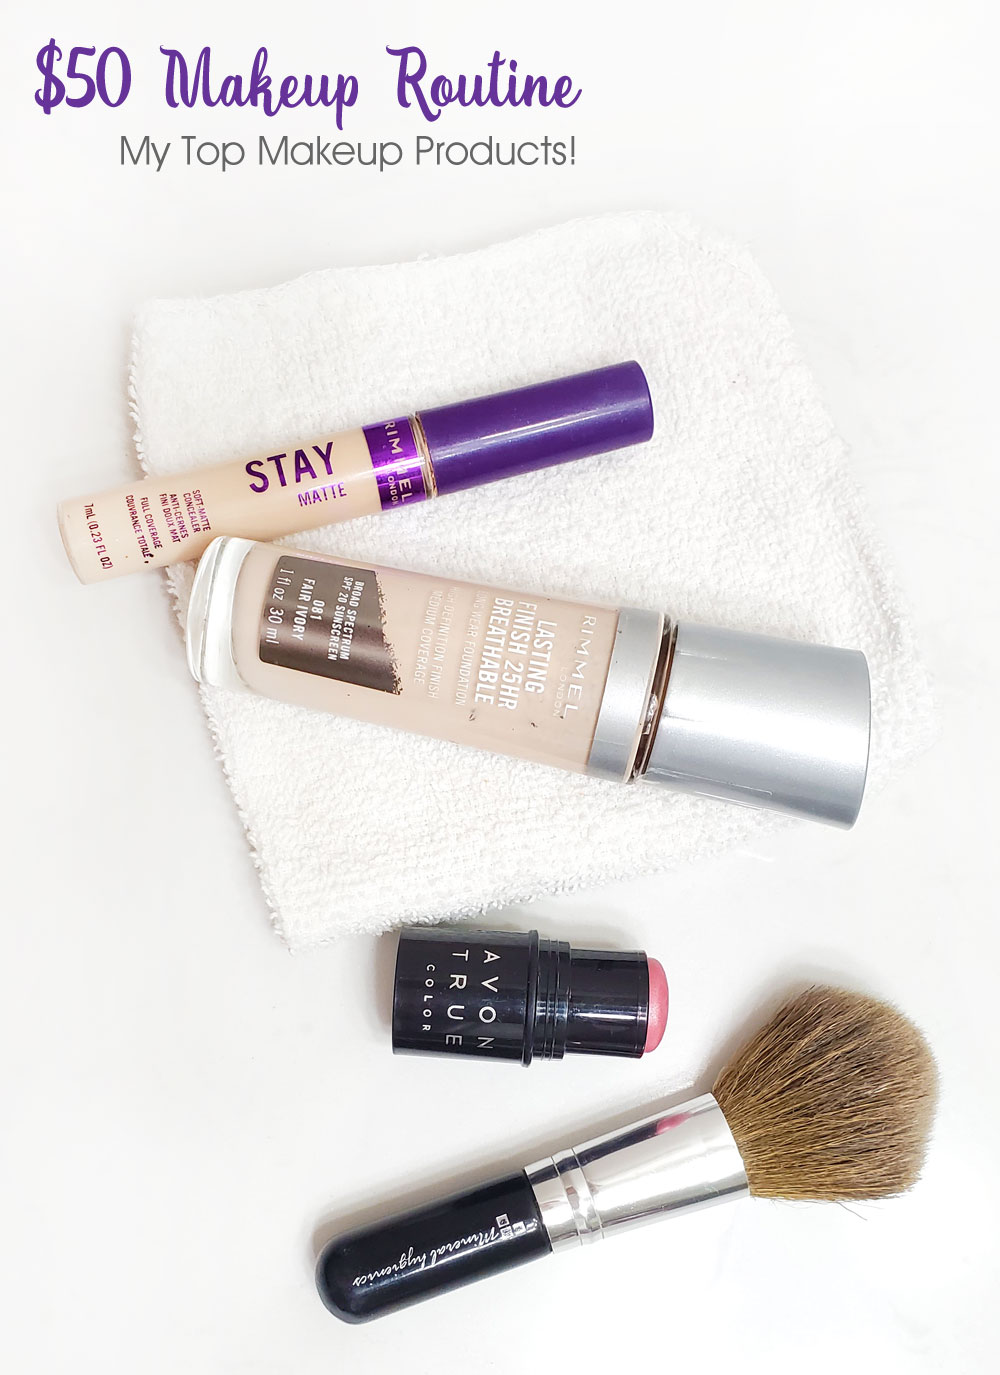 $50 dollar makeup routine and foundation, concealer and blush products